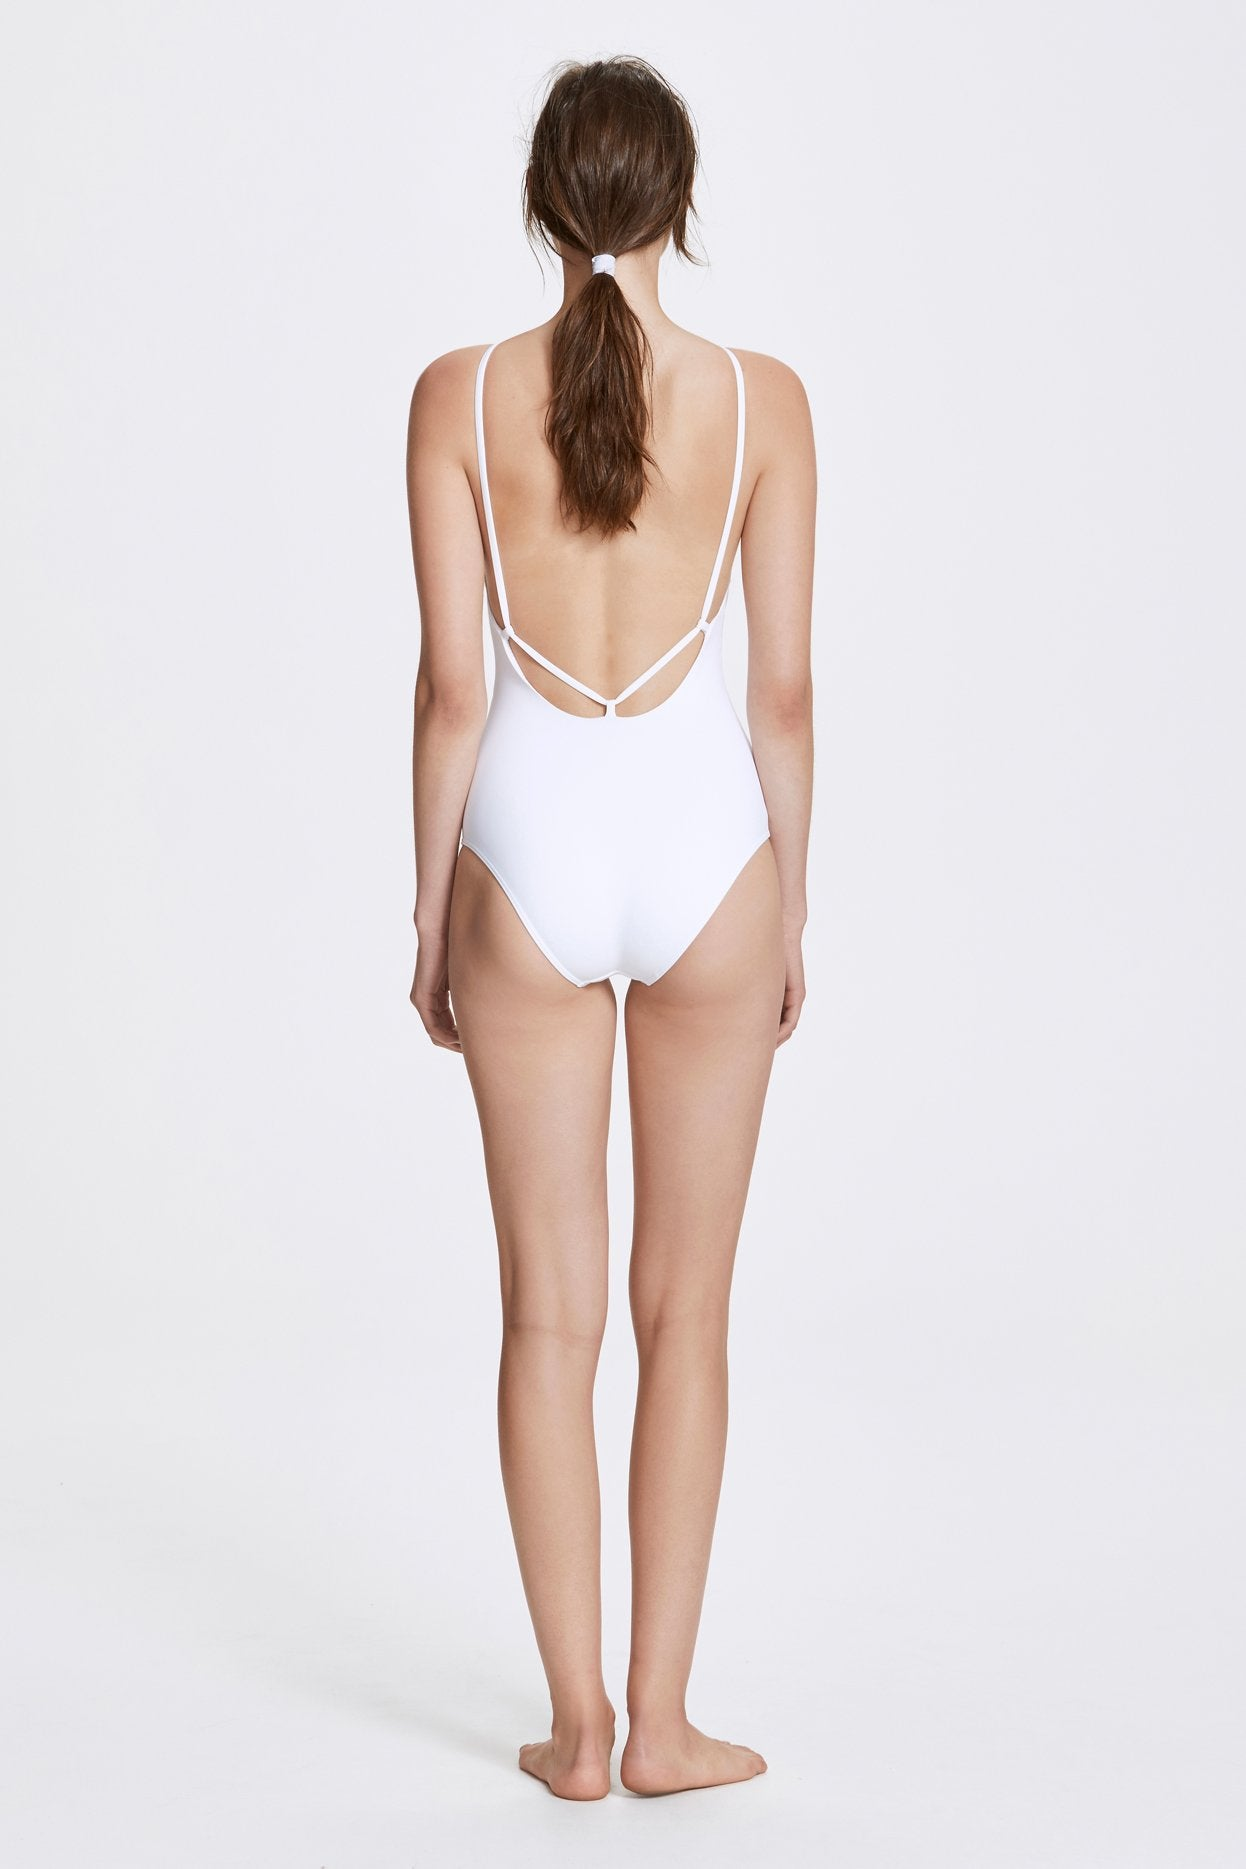 Her Line Jill Swimwear One Piece Milk White Back